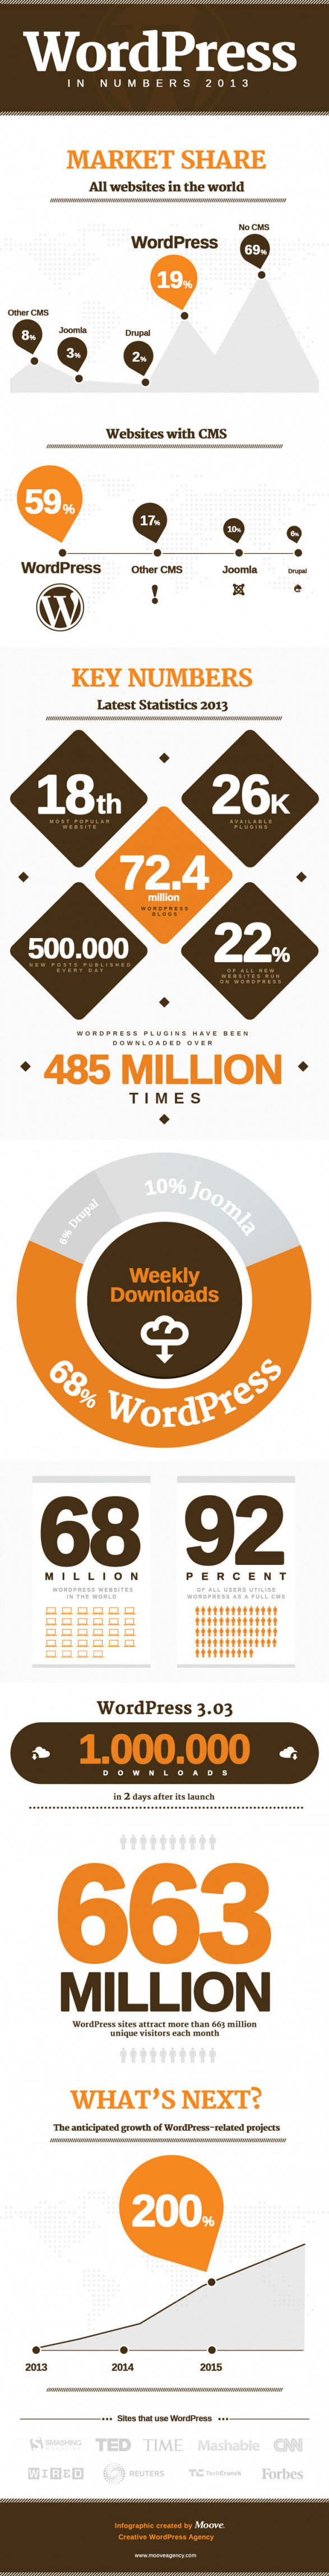 WordPress in Numbers Infographic 2013